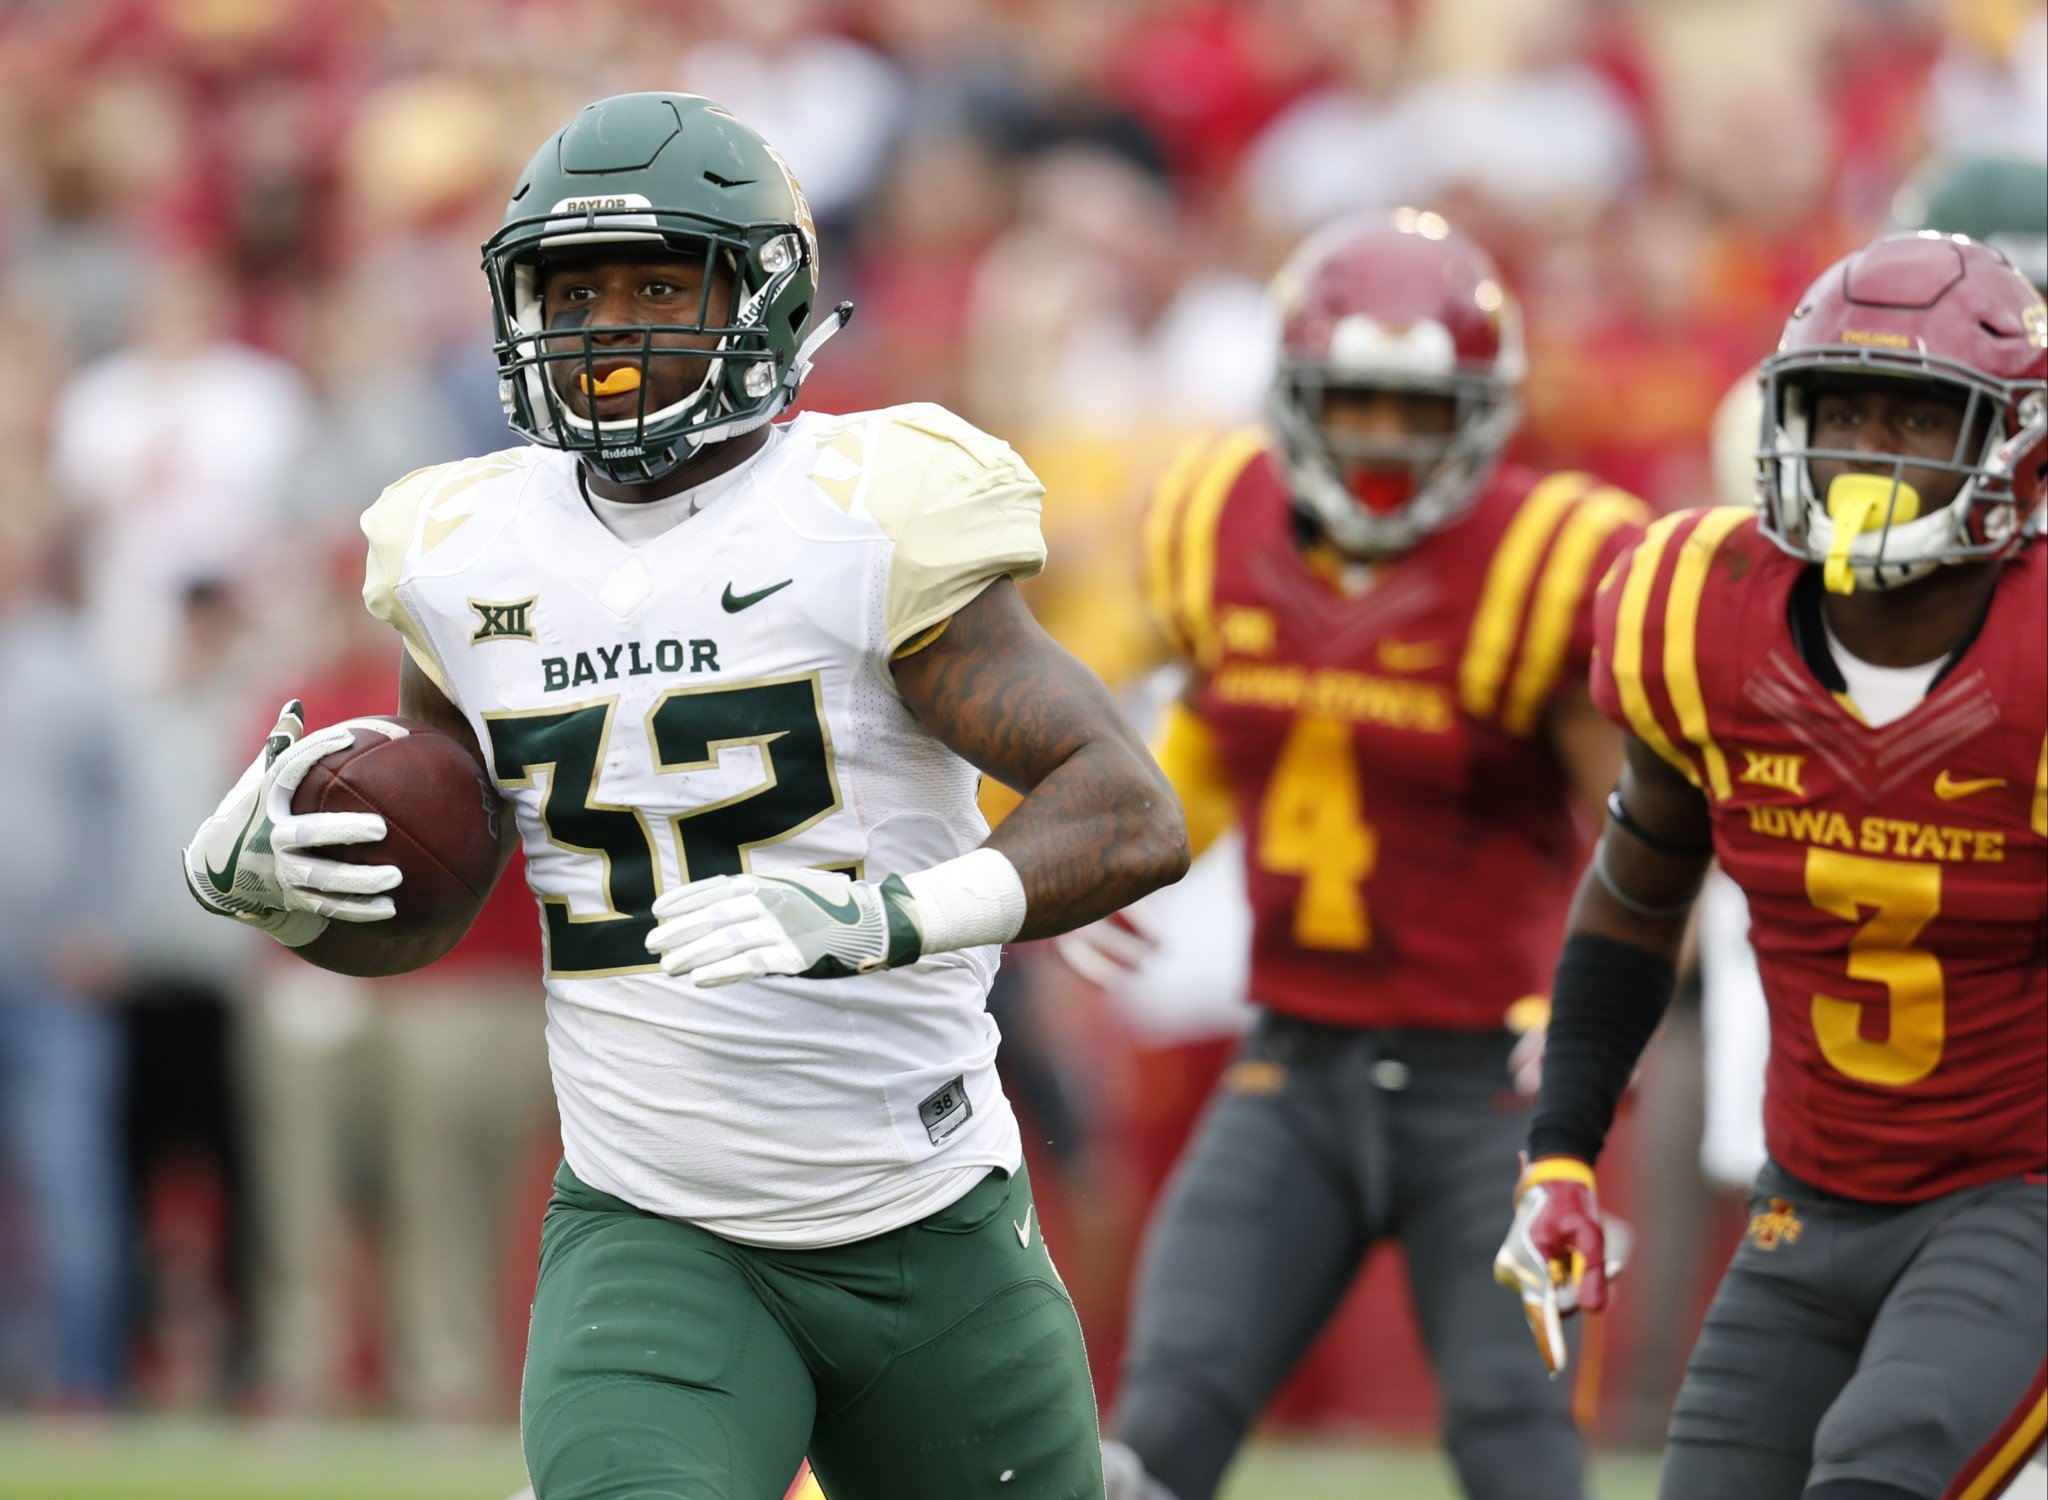 Shock Linwood is Baylor's all-time leading rusher. (Getty)